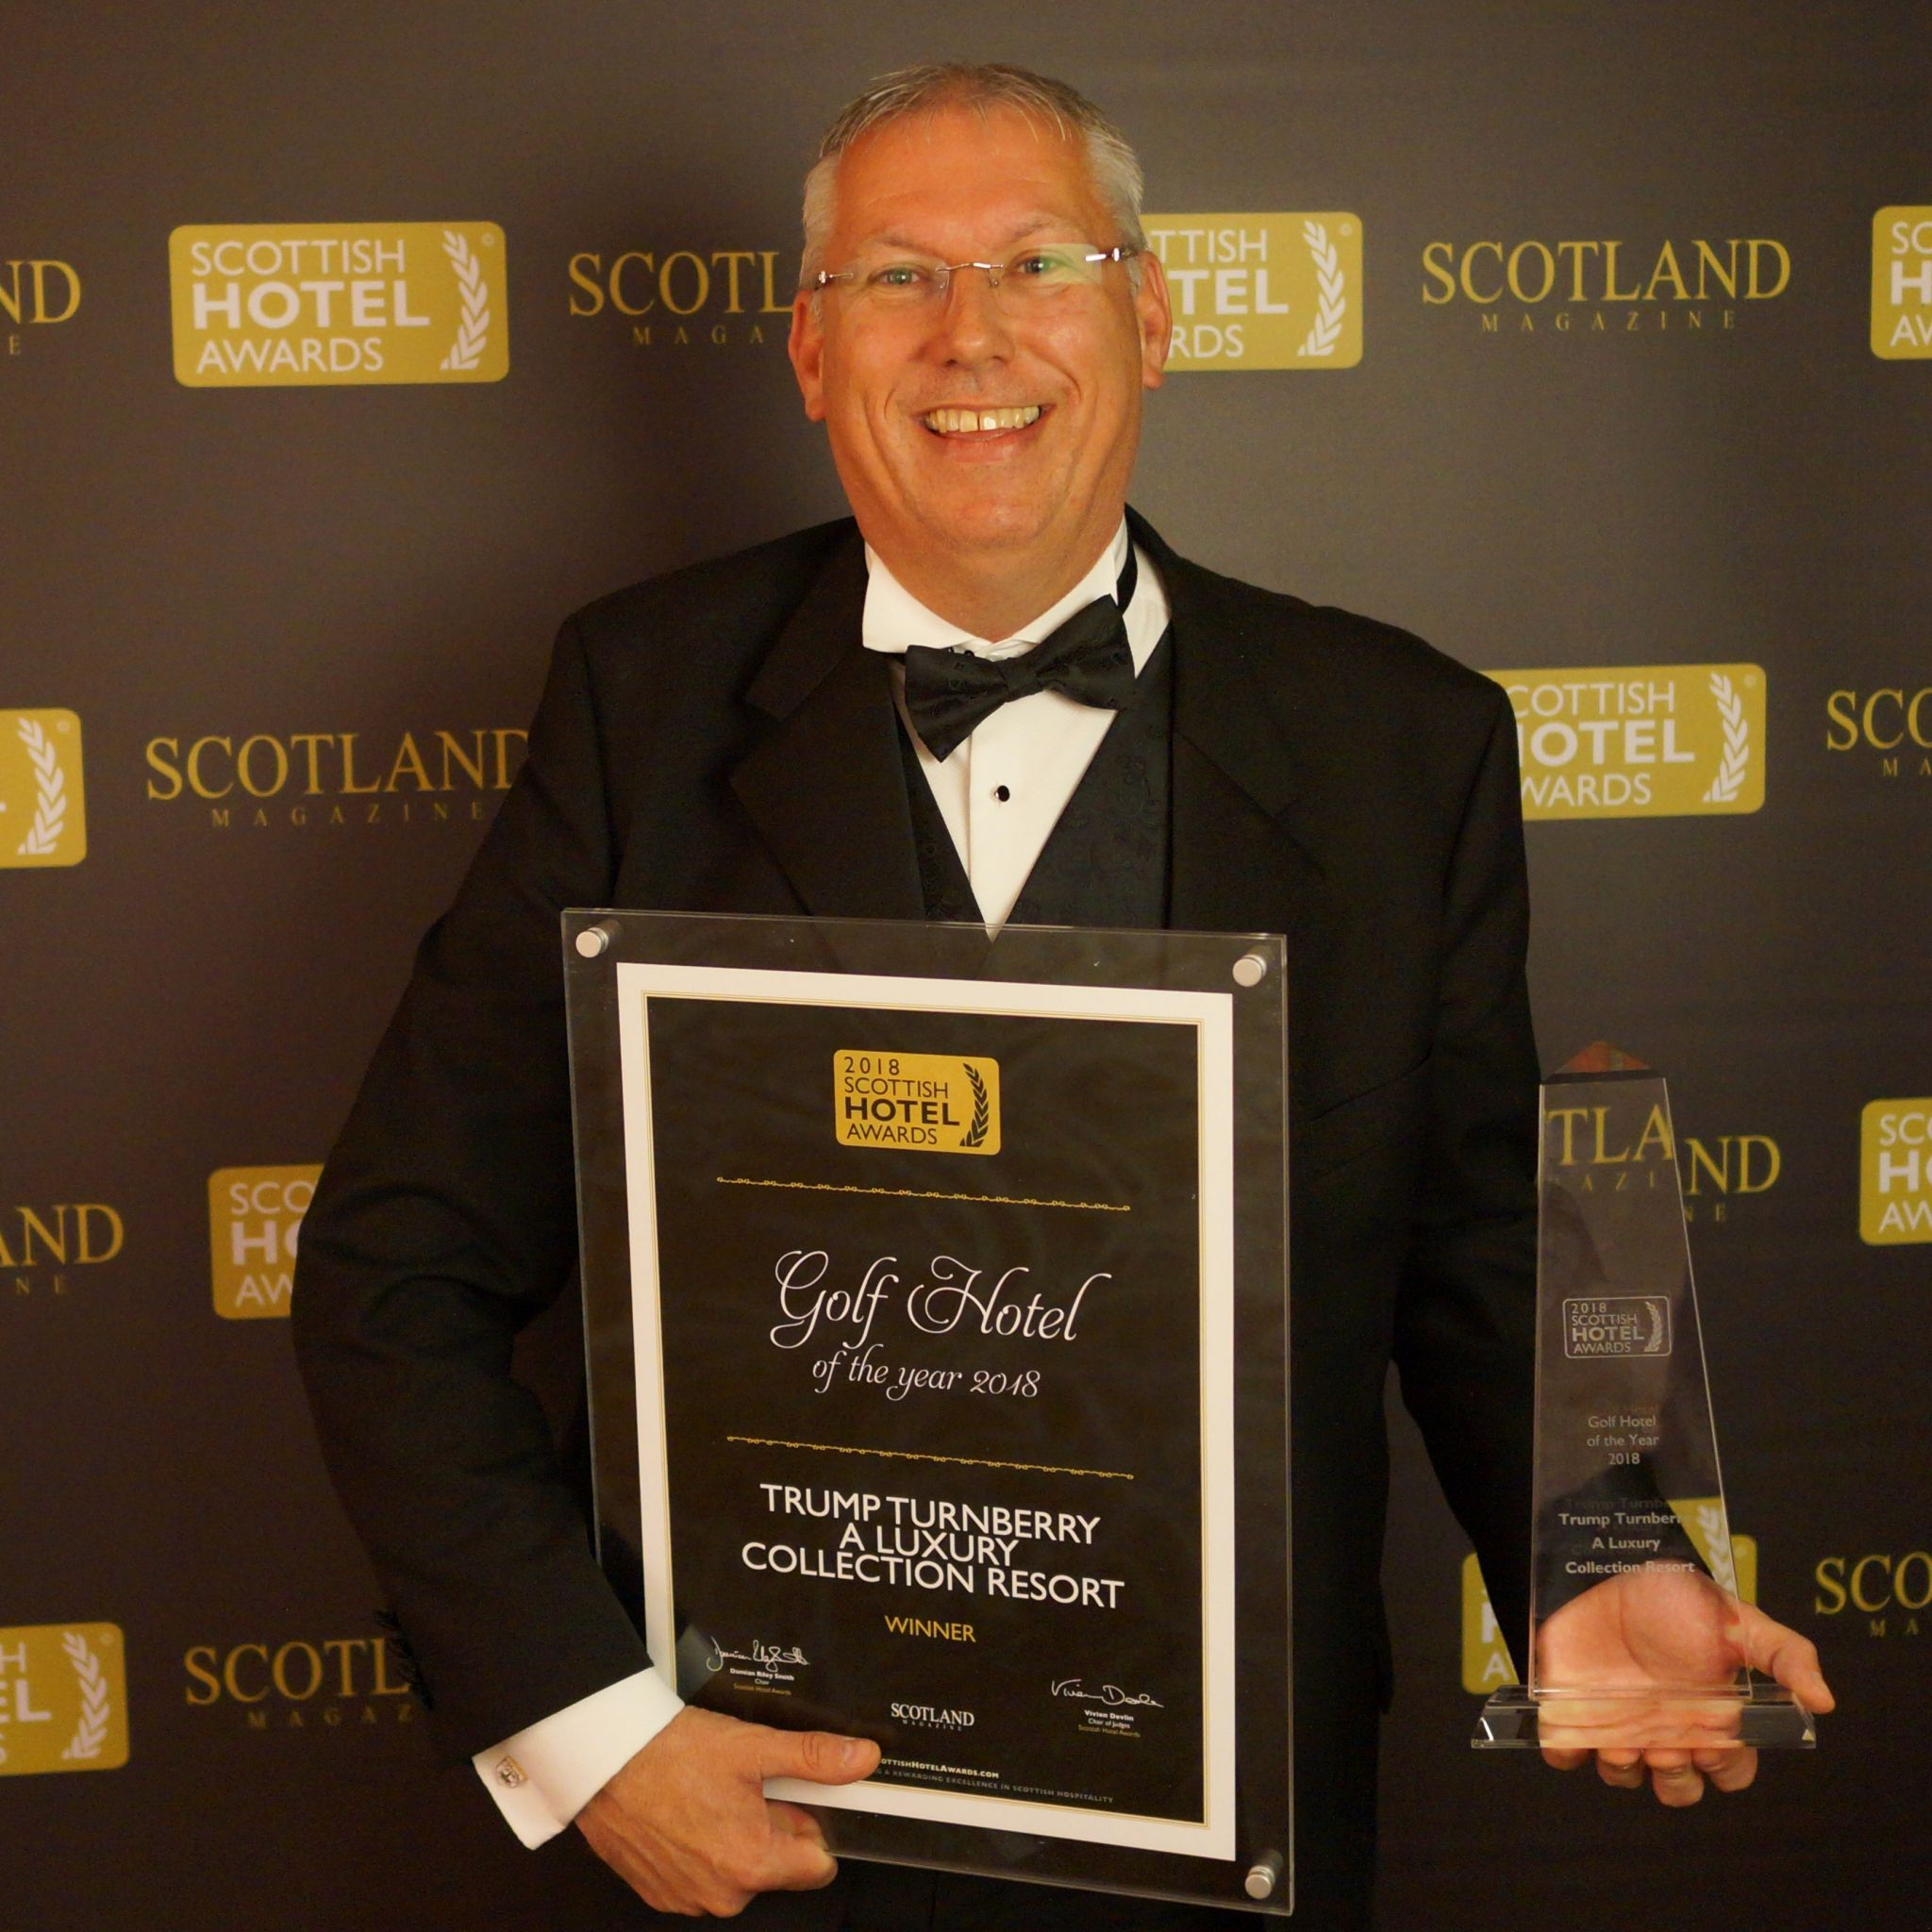 Trump Turnberry Golf Hotel of the Year